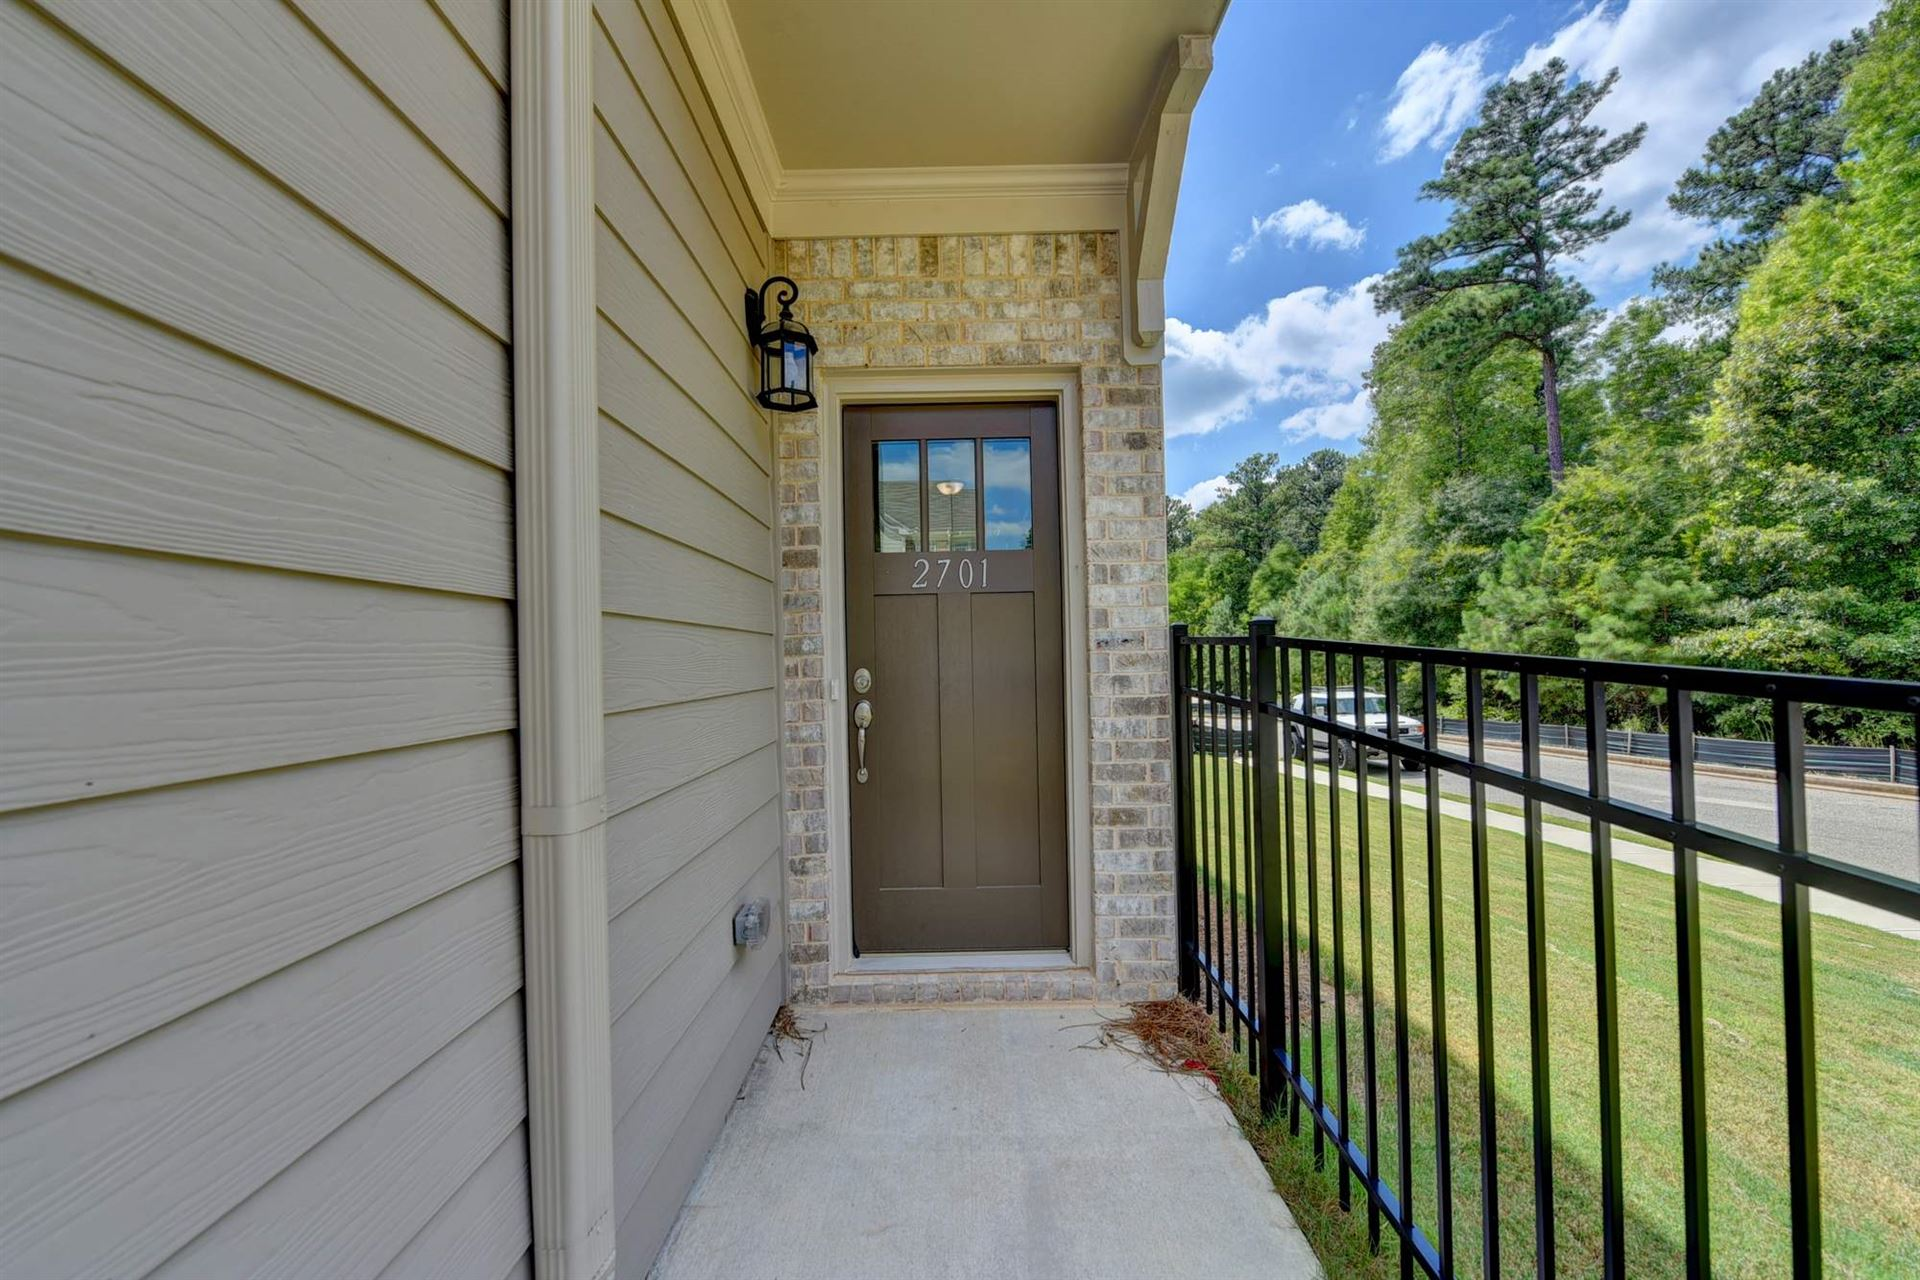 5404 Brooklands Dr, Lithonia, GA 30058 - MLS#: 8870831